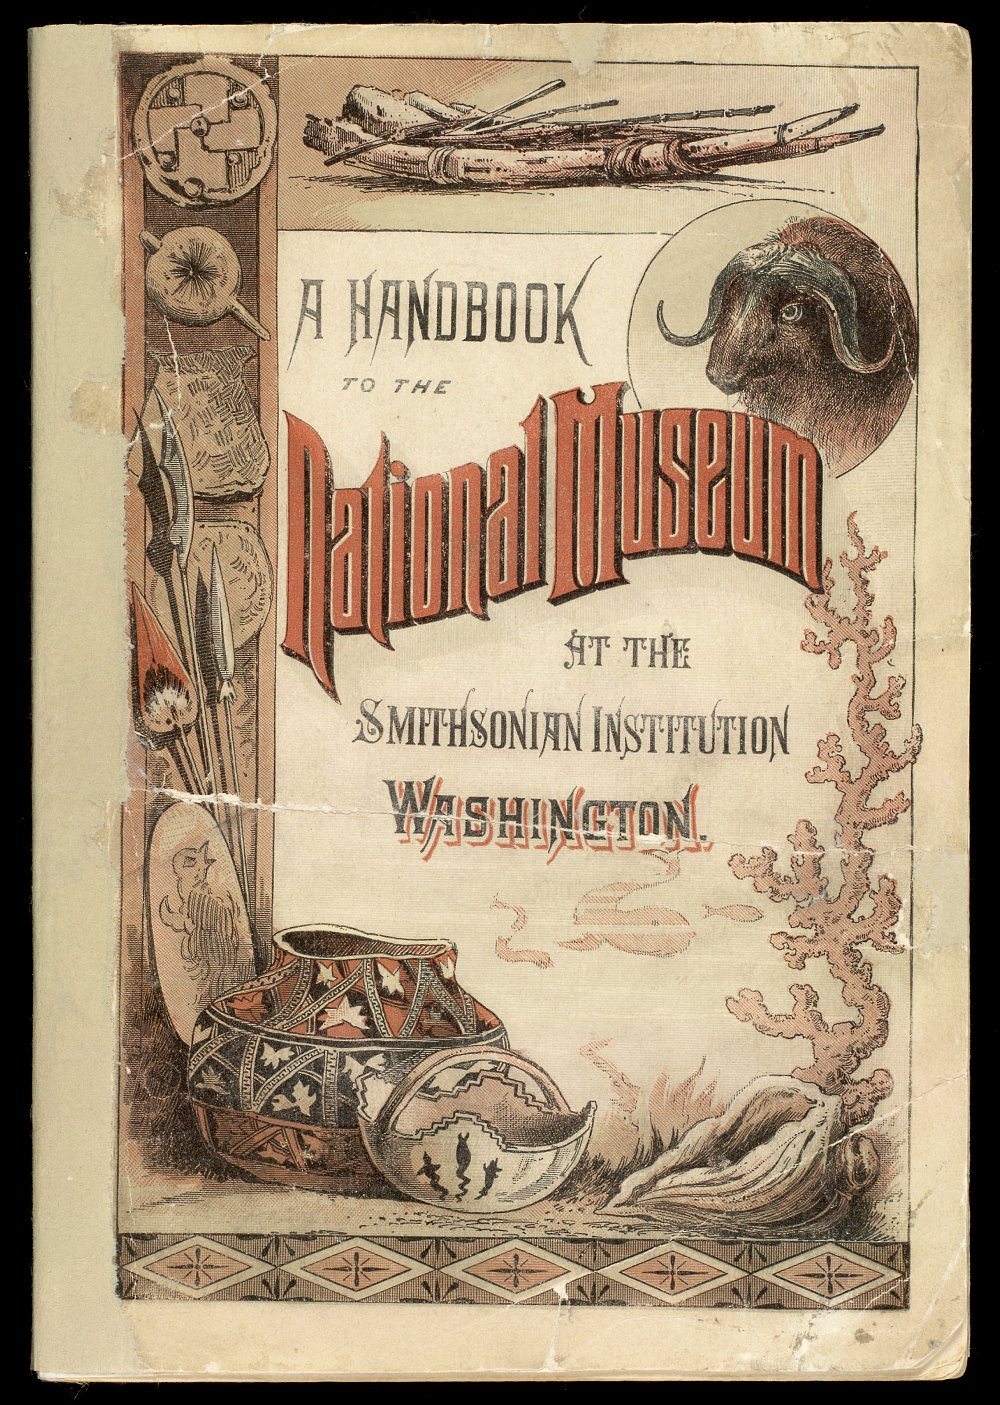 Front cover, Smithsonian National Museum guidebook, showing anthropological artifacts and biological specimens,  Image number:SIL21-04-001